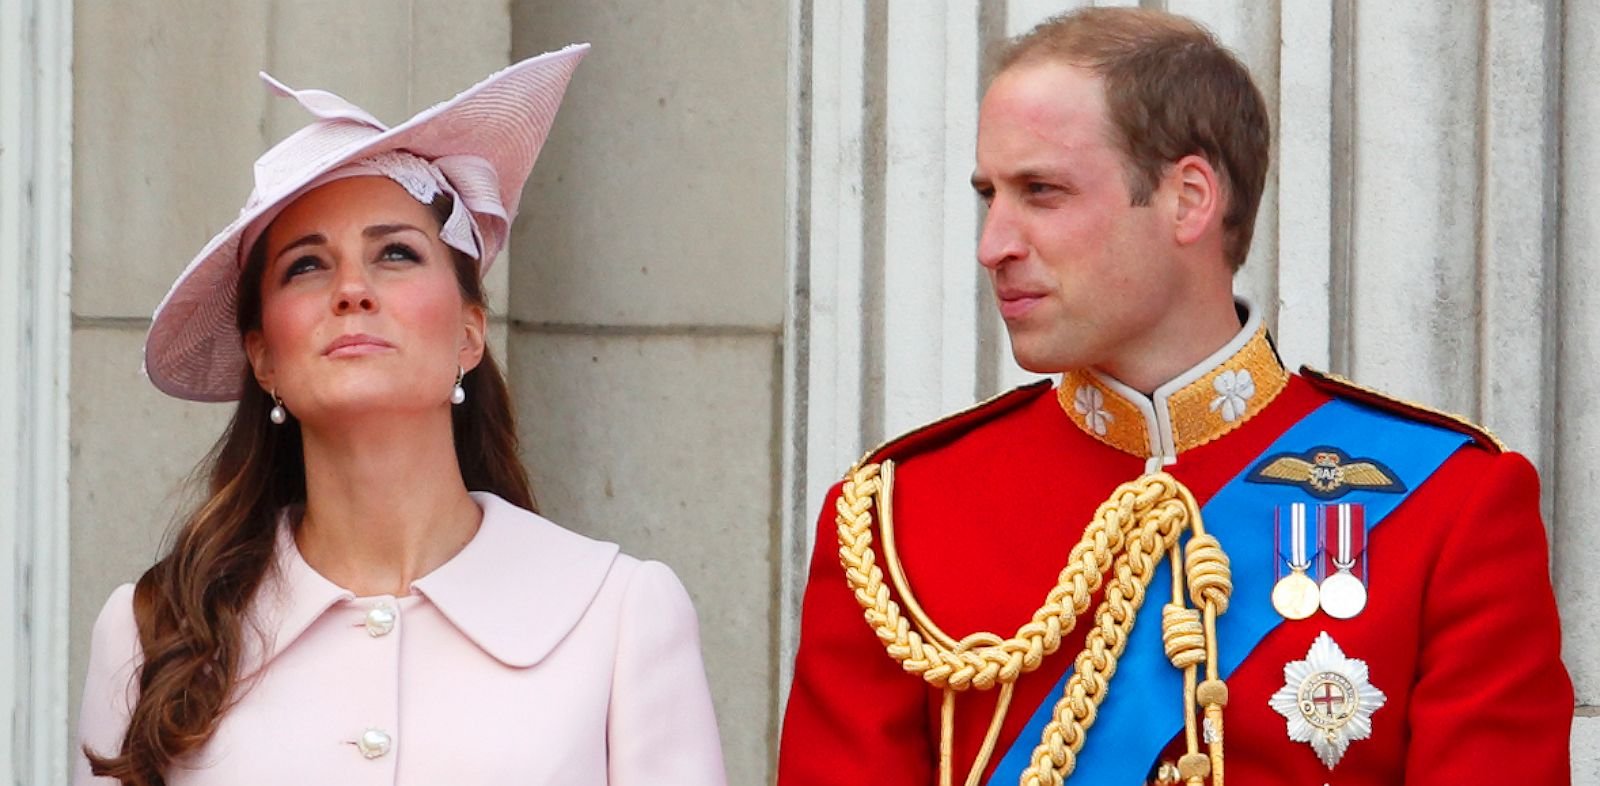 PHOTO: Catherine, Duchess of Cambridge and Prince William, Duke of Cambridge stand on the balcony of Buckingham Palace during the annual Trooping the Colour Ceremony on June 15, 2013 in London, England.